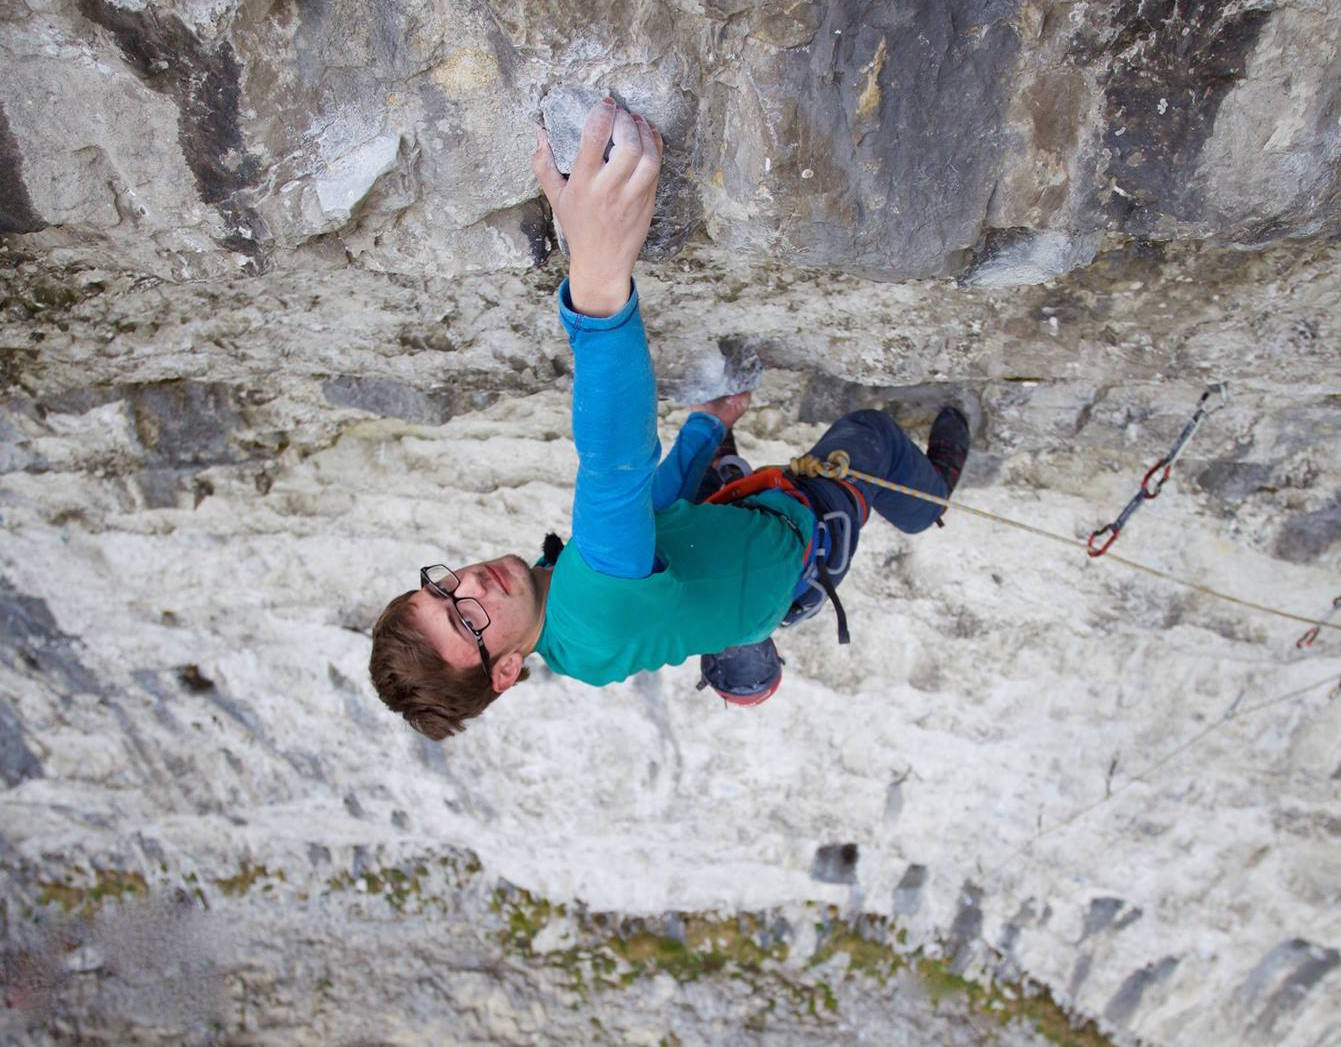 William Bosi topping out on Rainshadow 9a to become the youngest Brit to climb 9a.